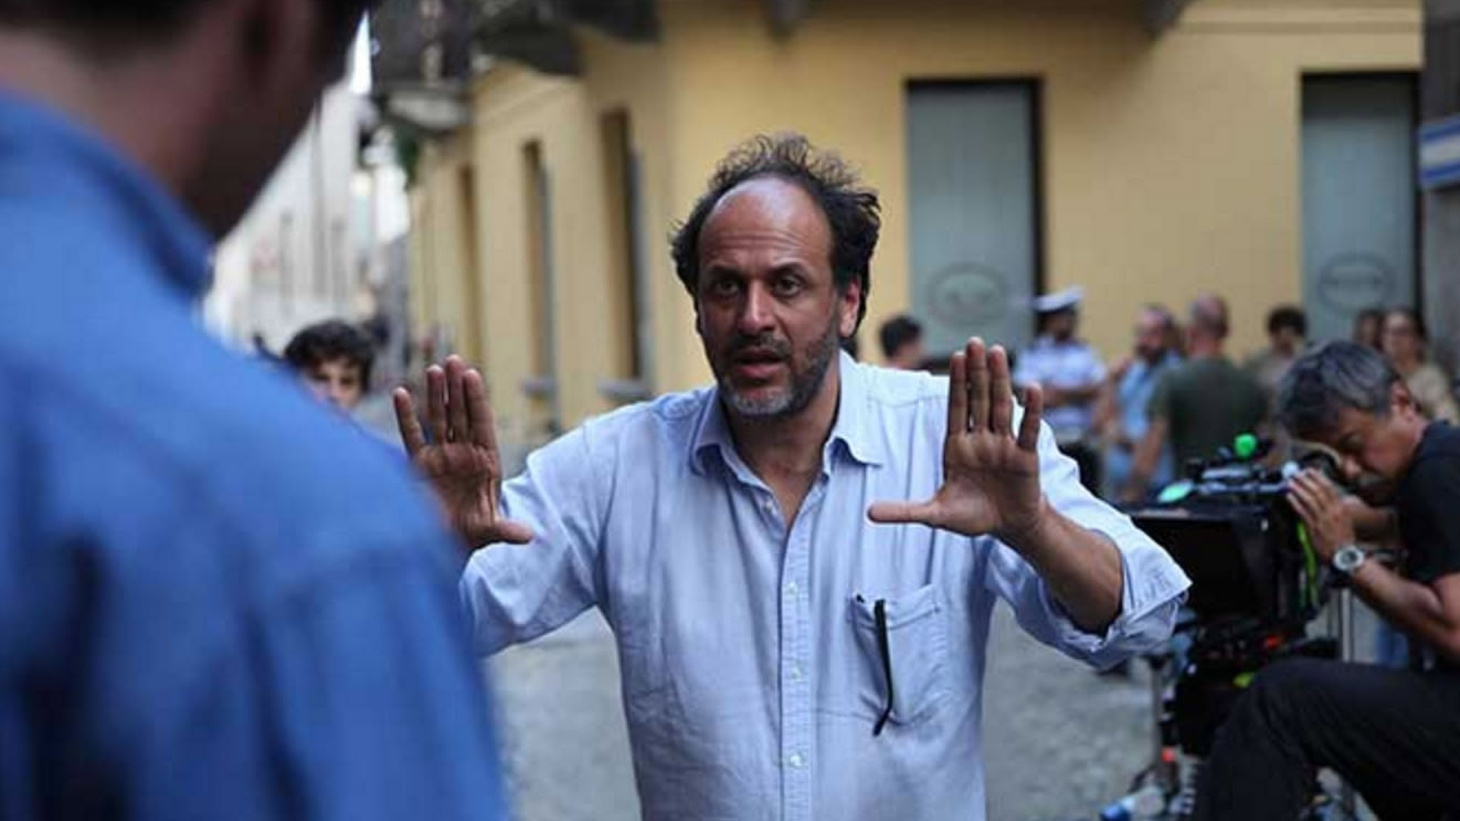 For the new movie Call Me By Your Name, Italian filmmaker Luca Guadagnino started as a consultant but ended up as the director. He tells us about the decade-long journey making the film and how he convinced Armie Hammer to take the part of Oliver, a closeted graduate student who finds a passionate romance one summer in 1980s Italy.